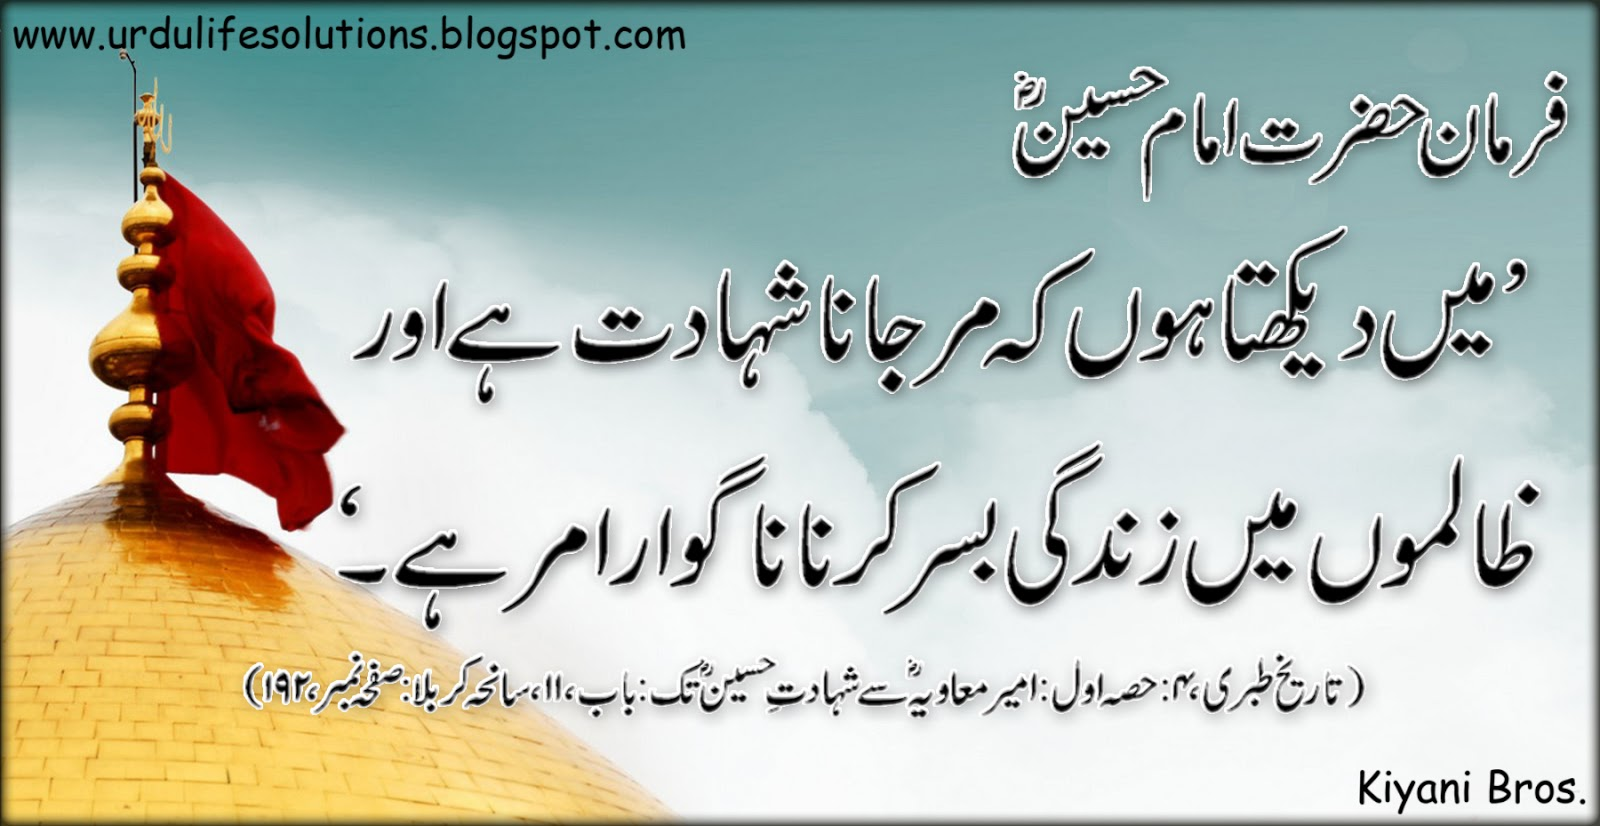 hazrat imam hussain Find and save ideas about hazrat imam hussain on pinterest | see more ideas about imam hussain karbala, imam hussain and ali islam.